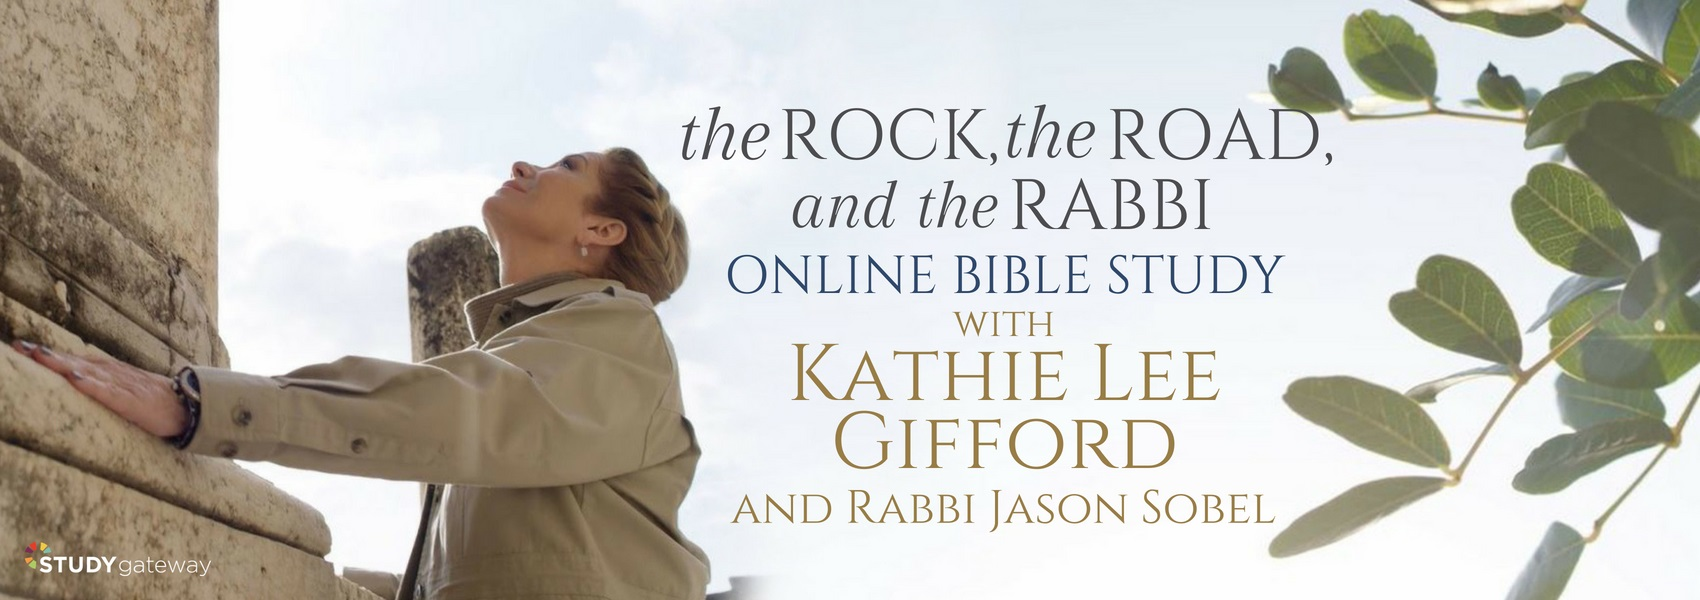 Kathie Lee Gifford's The Rock, the Road, and the Rabbi Online Bible